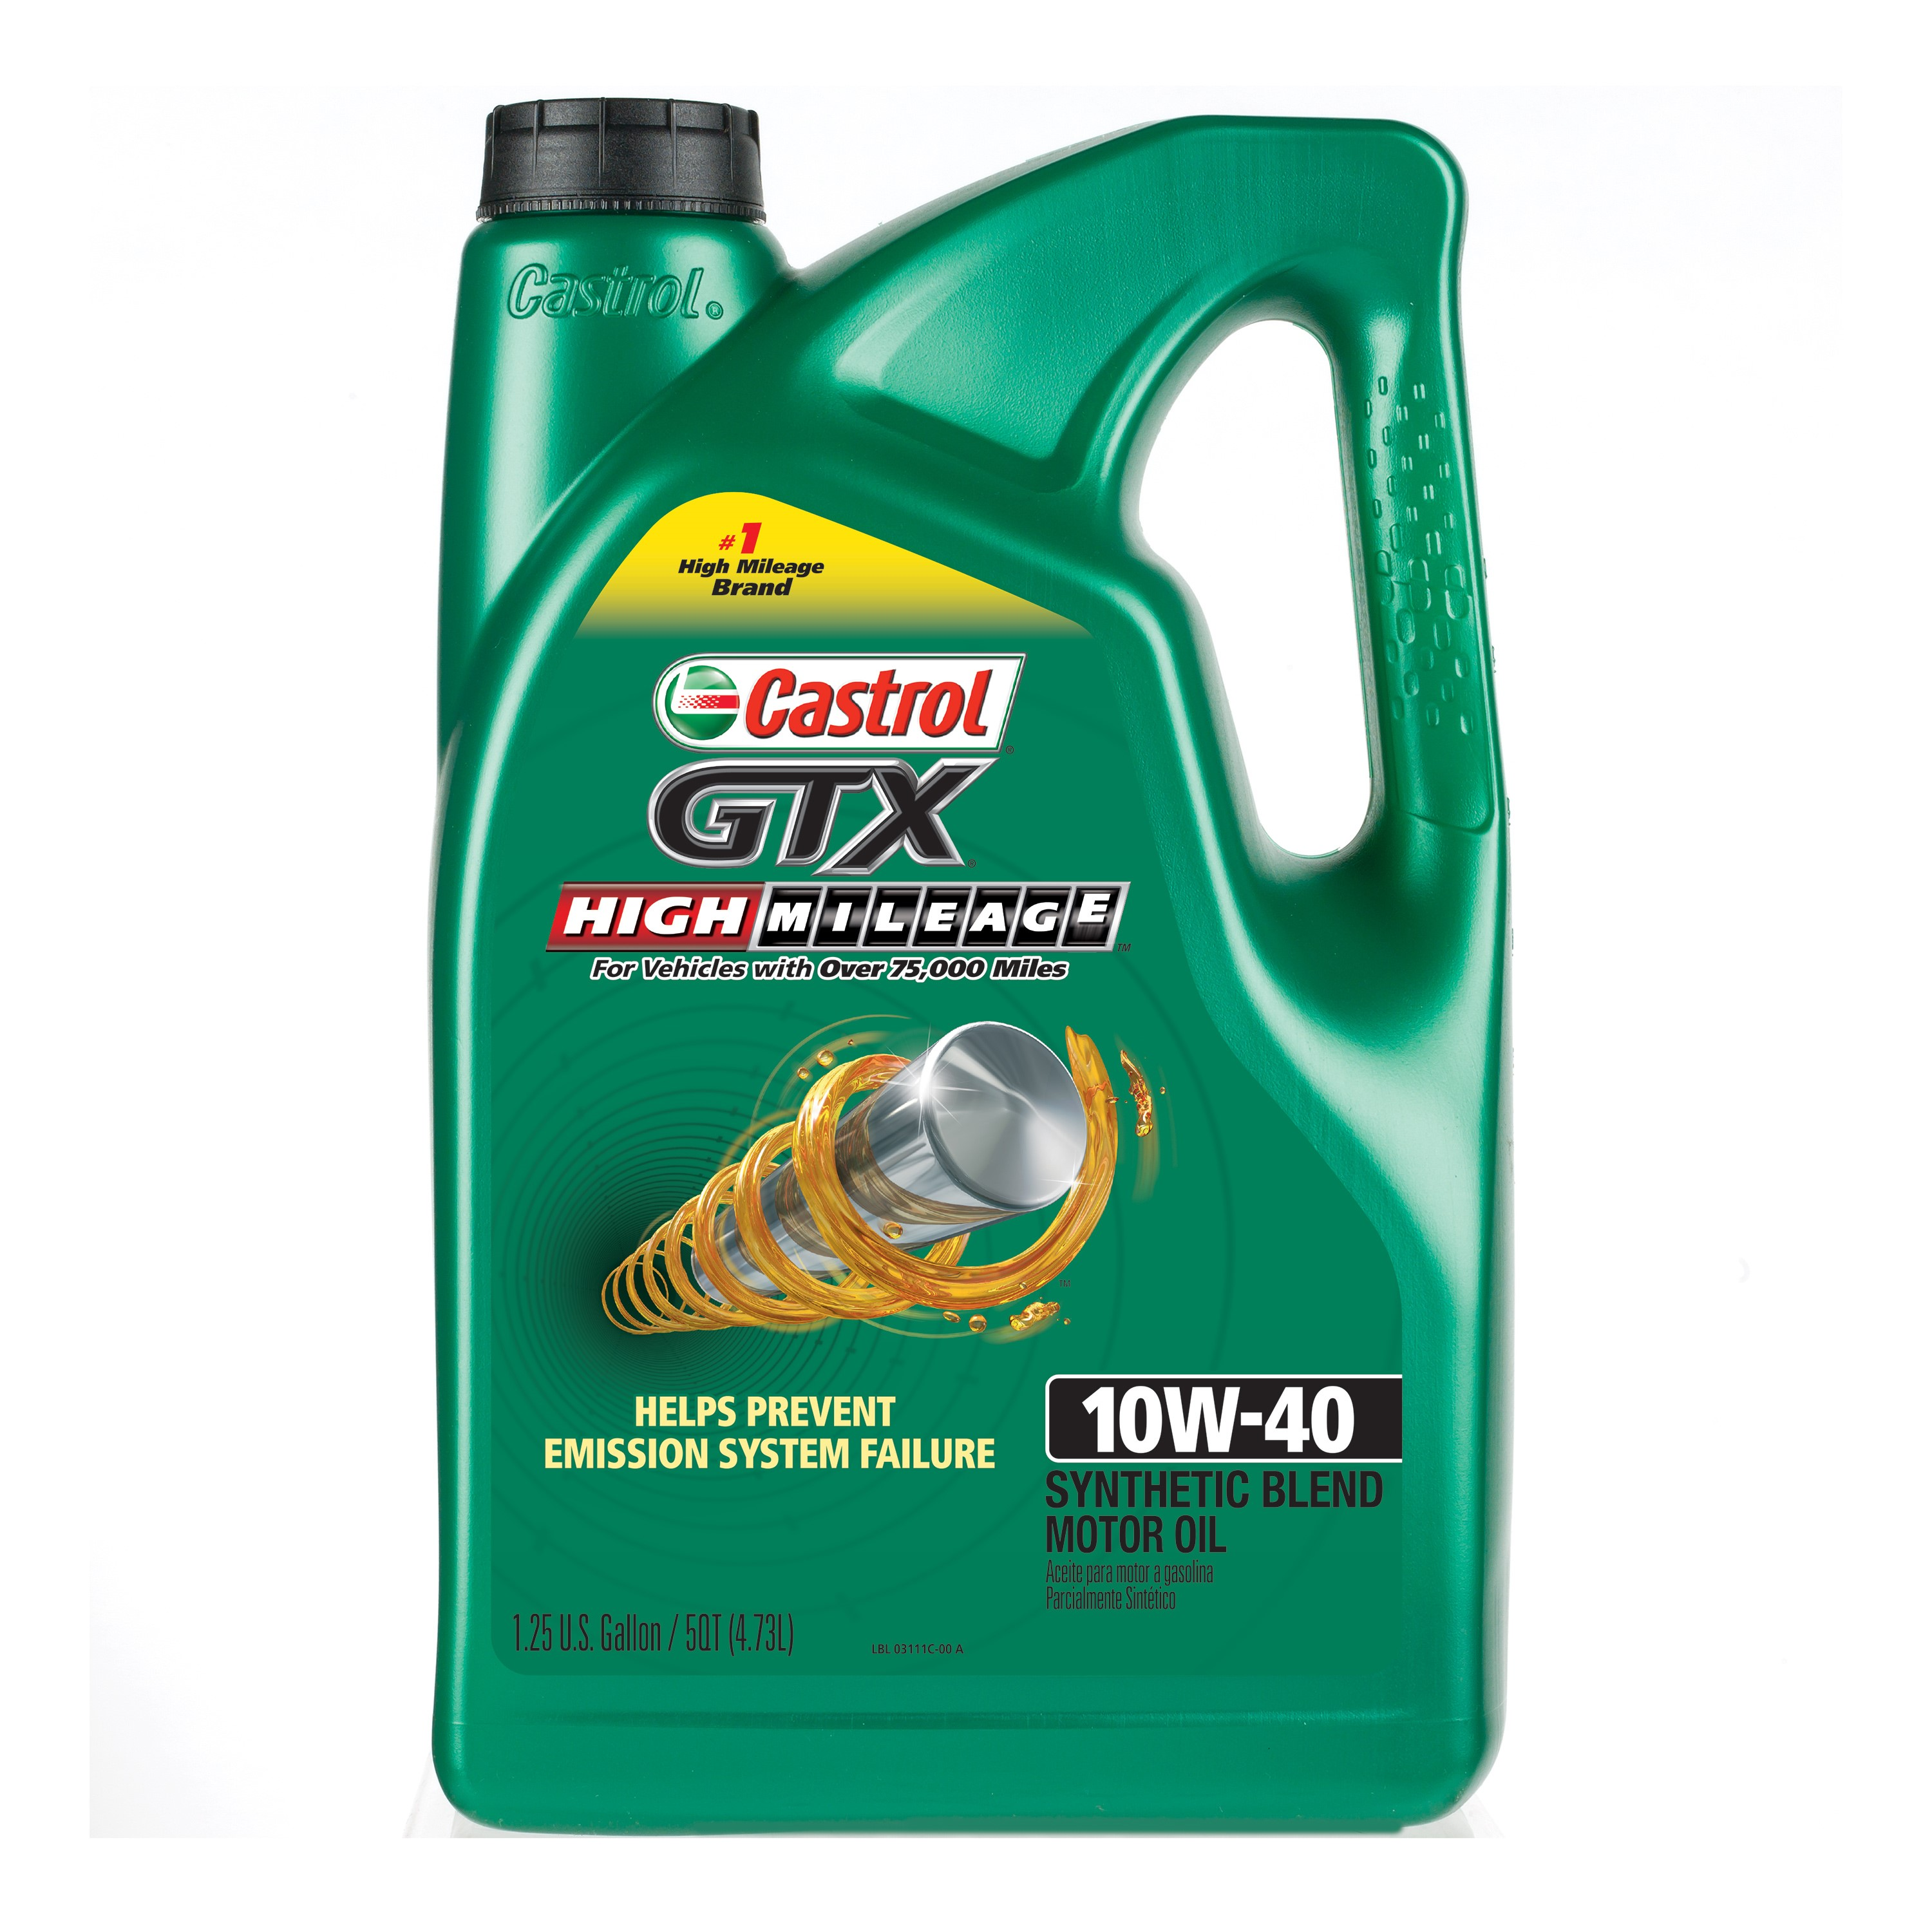 (3 Pack) Castrol GTX High Mileage 10W-40 Synthetic Blend Motor Oil, 5 QT